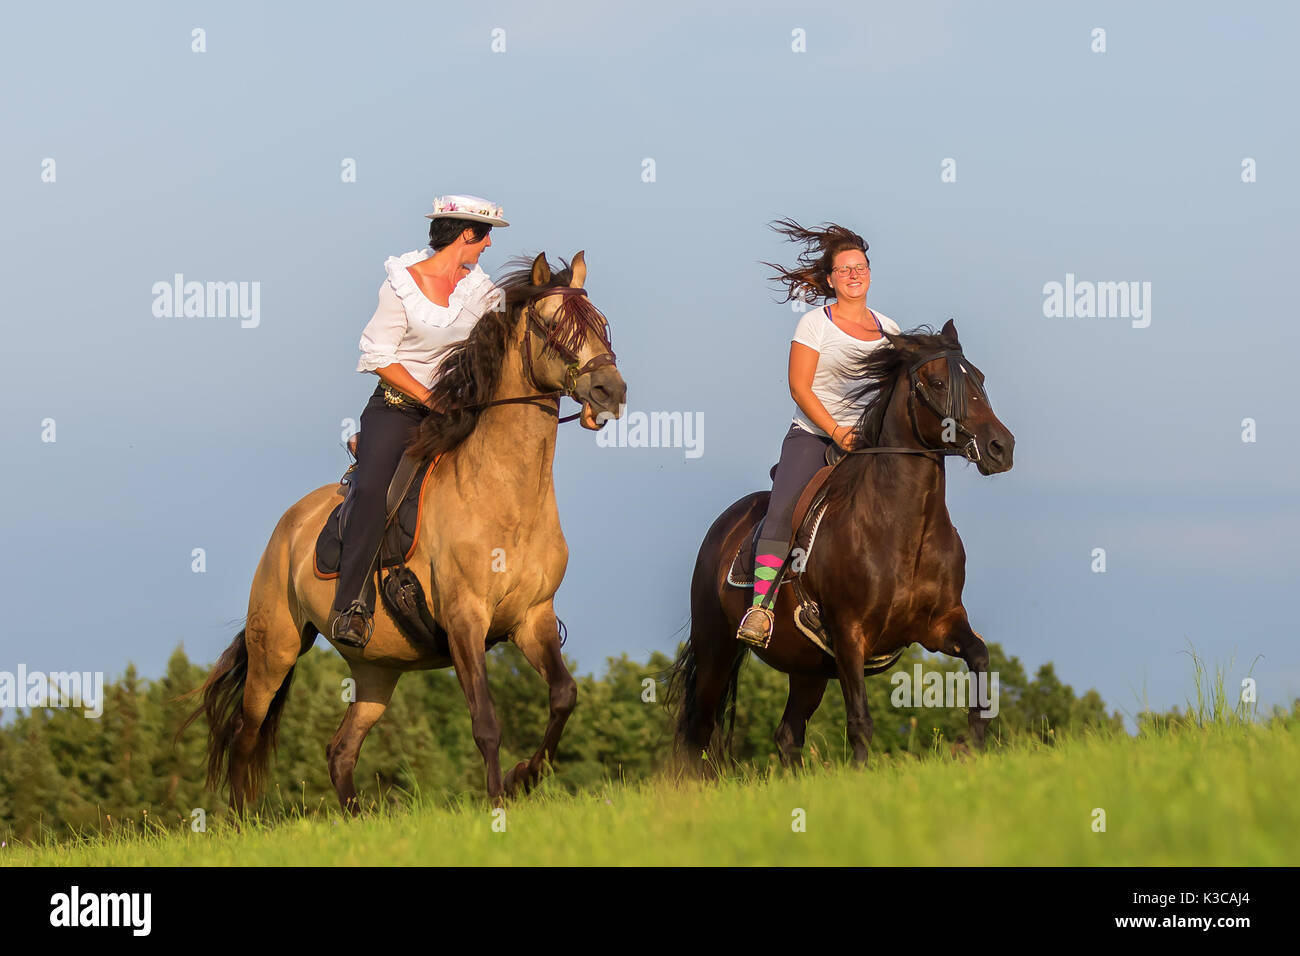 two women ride Andalusian horses in the fields - Stock Image